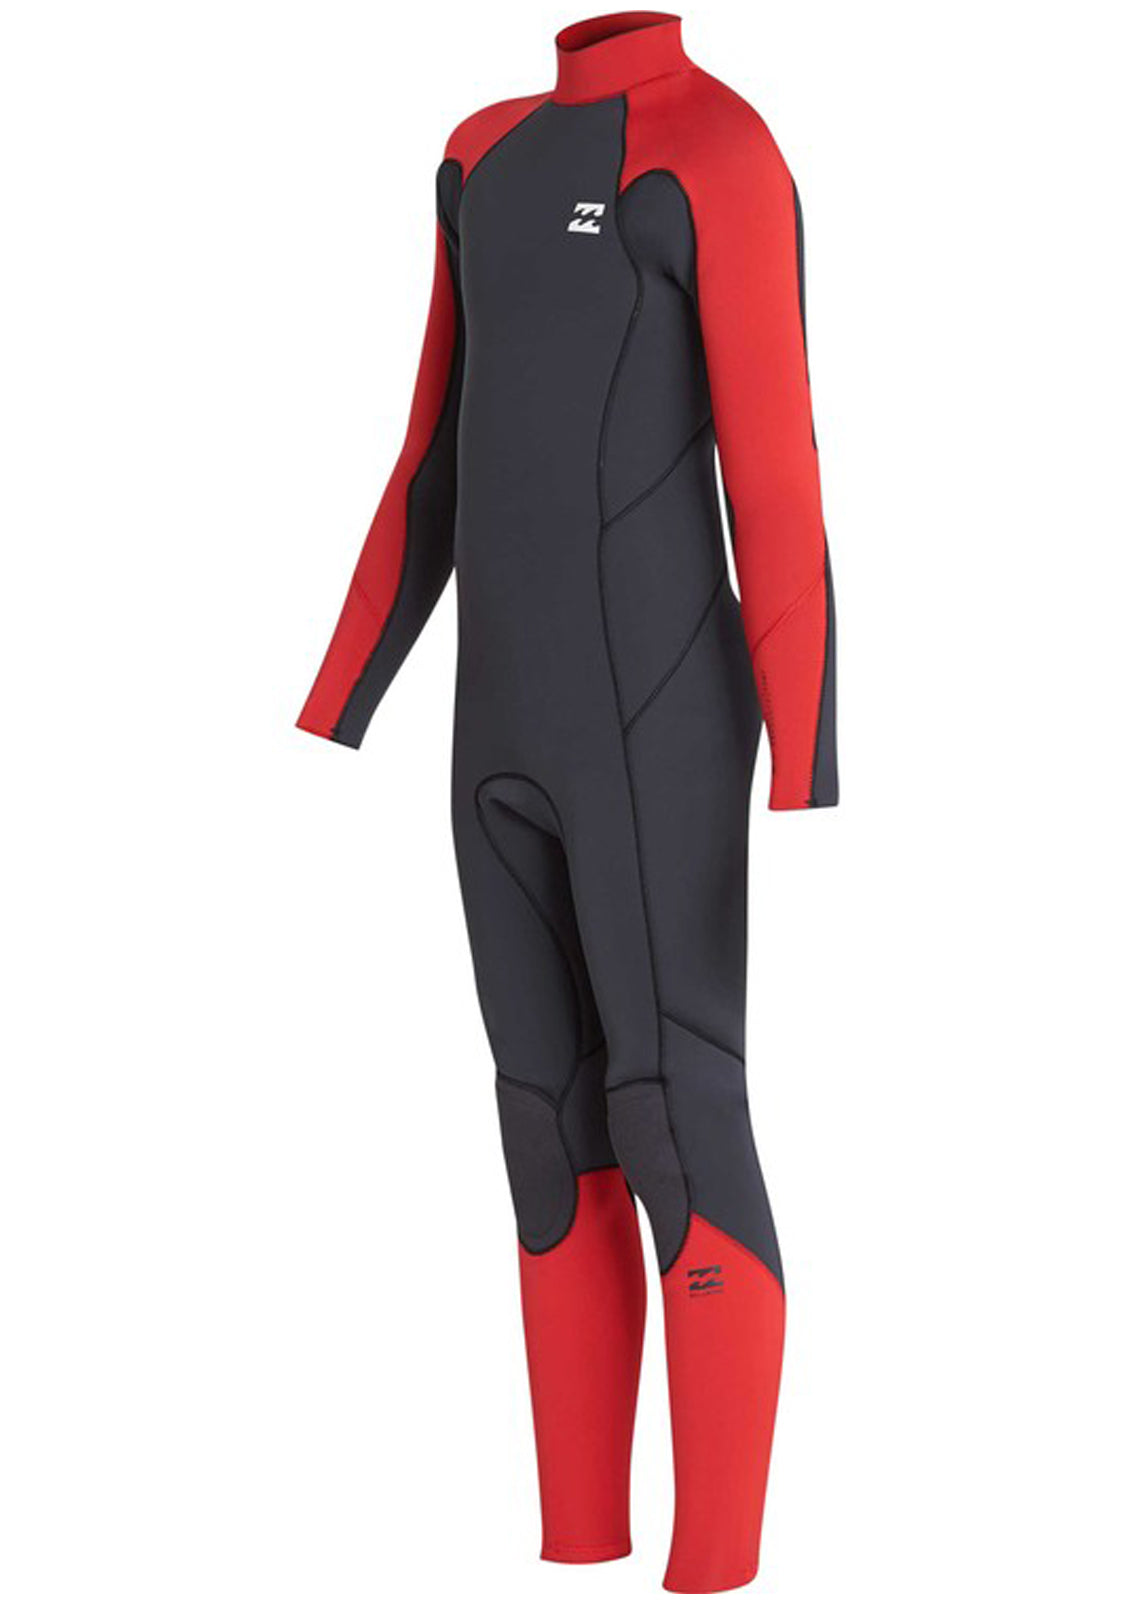 Billabong Boys 403 Furnace Absolute Back Zip GBS Wetsuit